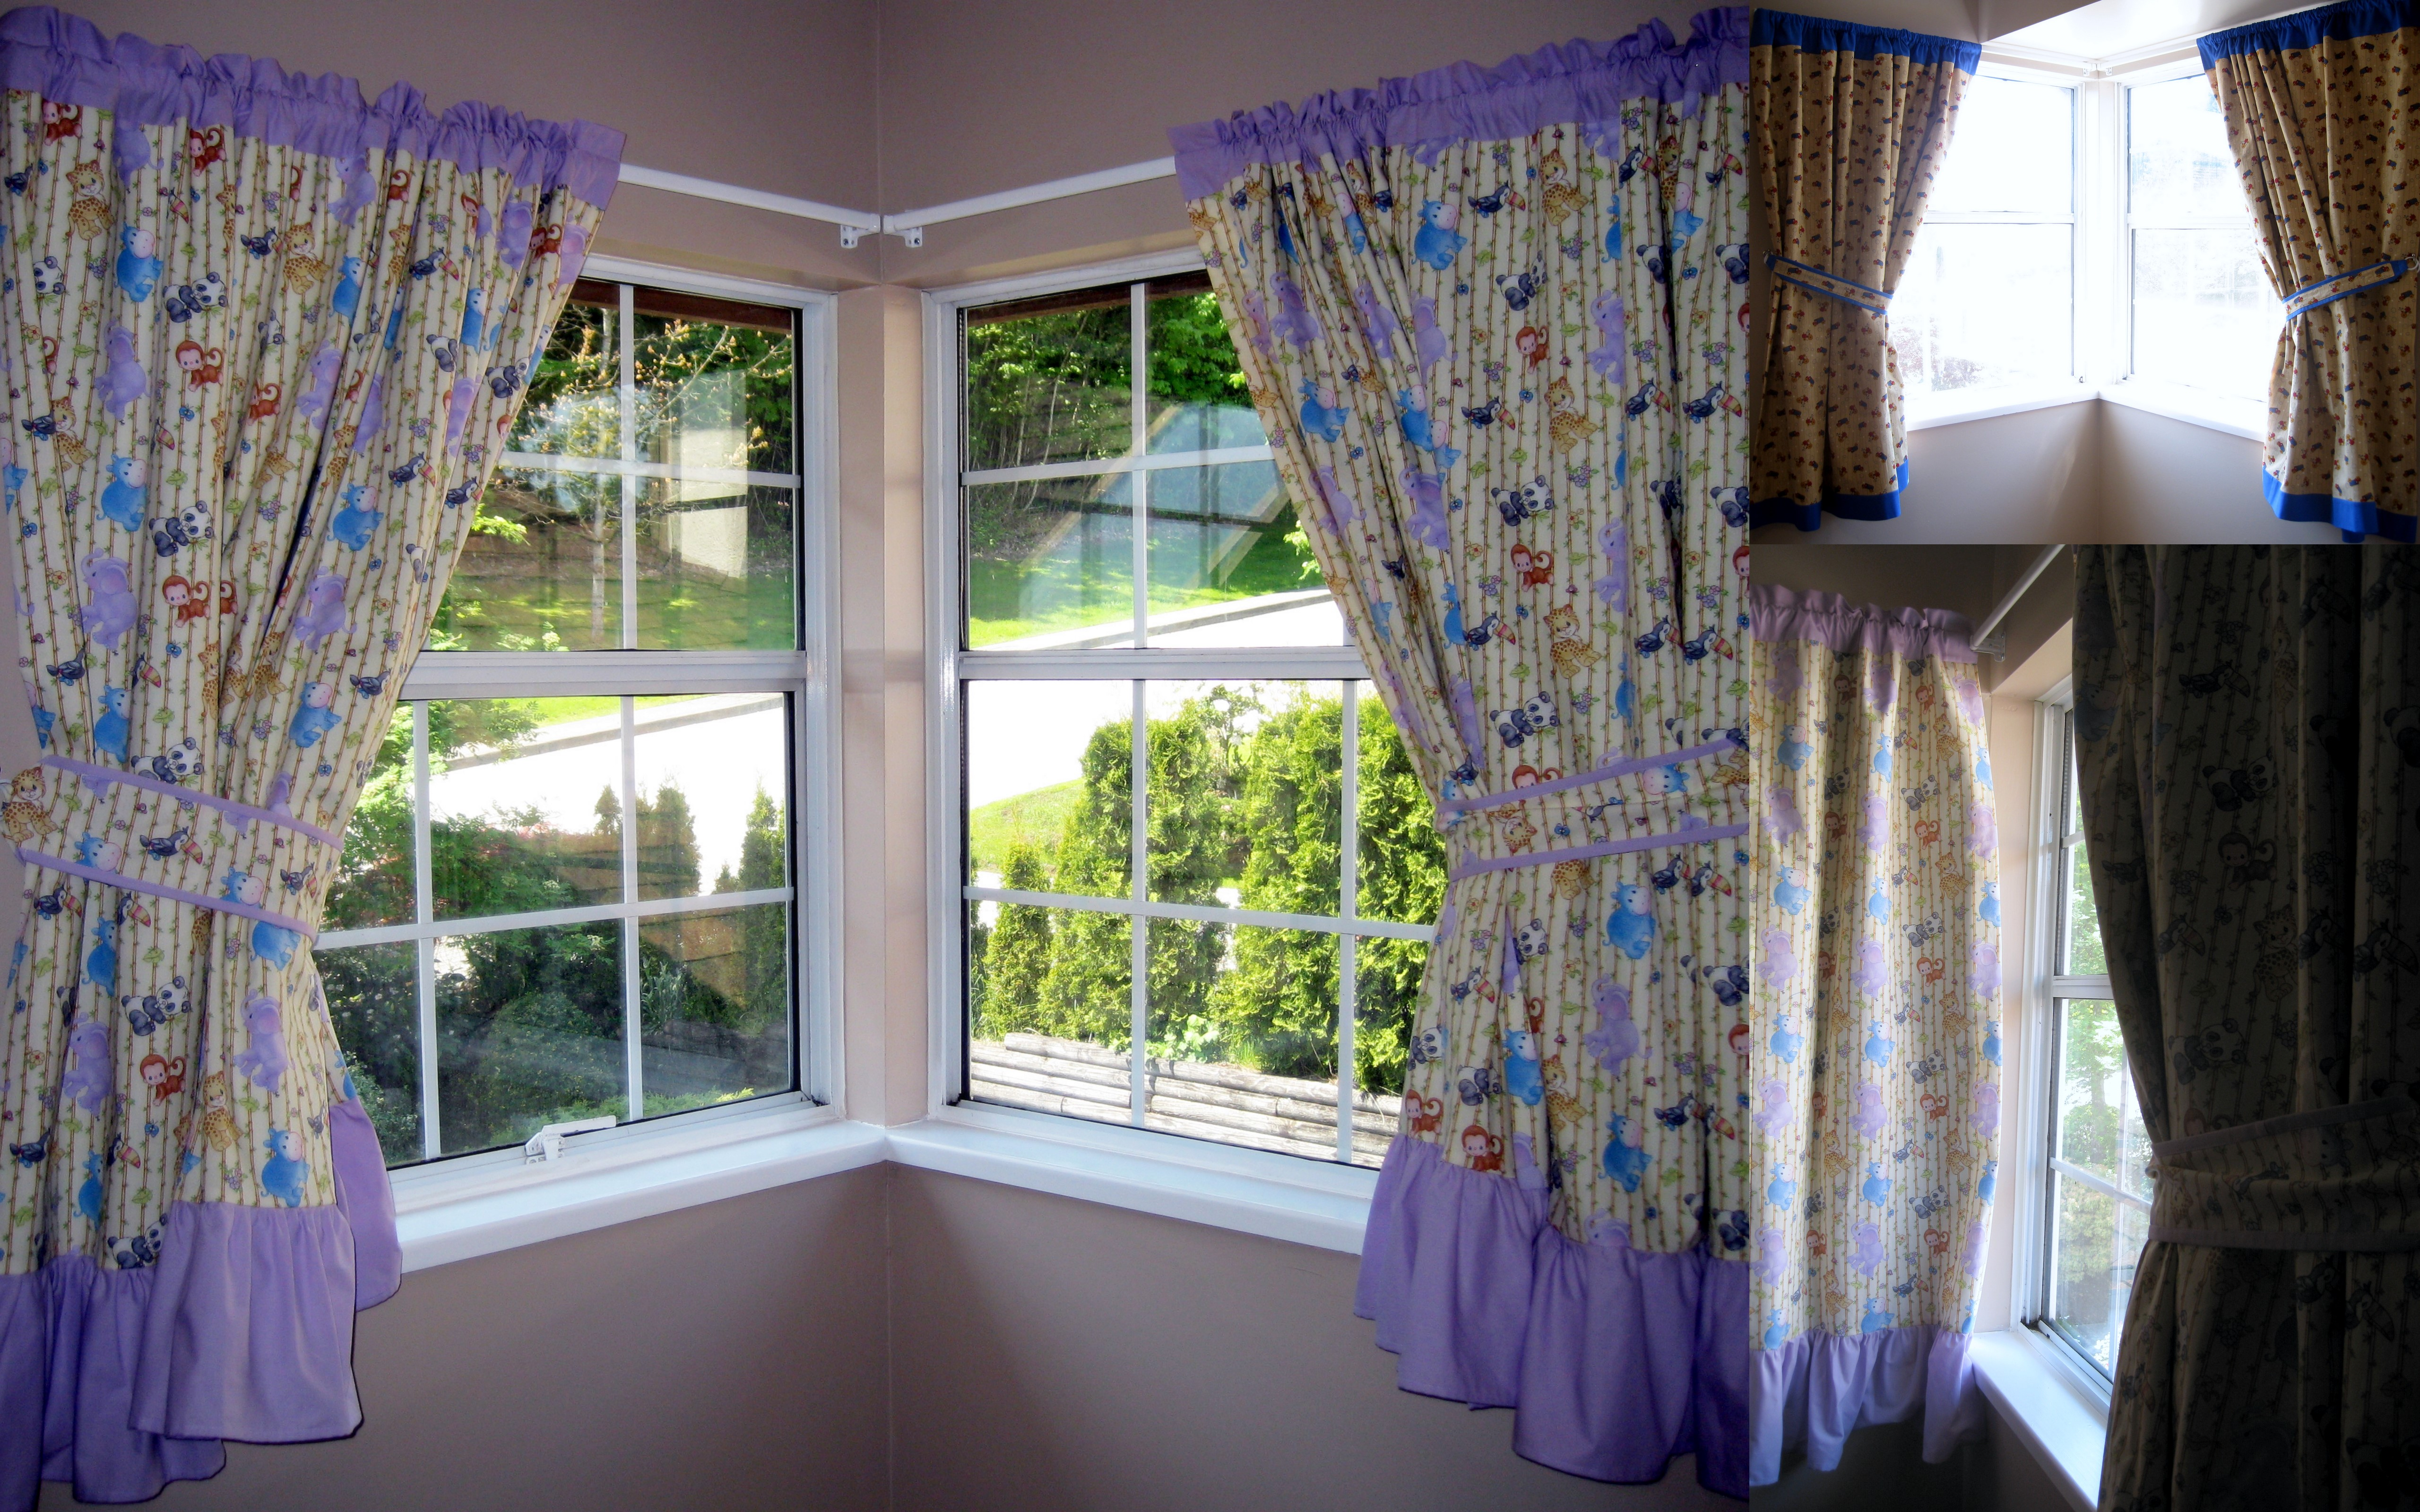 Bedroom window curtain designs - Corner Window Curtain Ideas Modern Curtains Dark Gold European Design Beautiful Bedroom